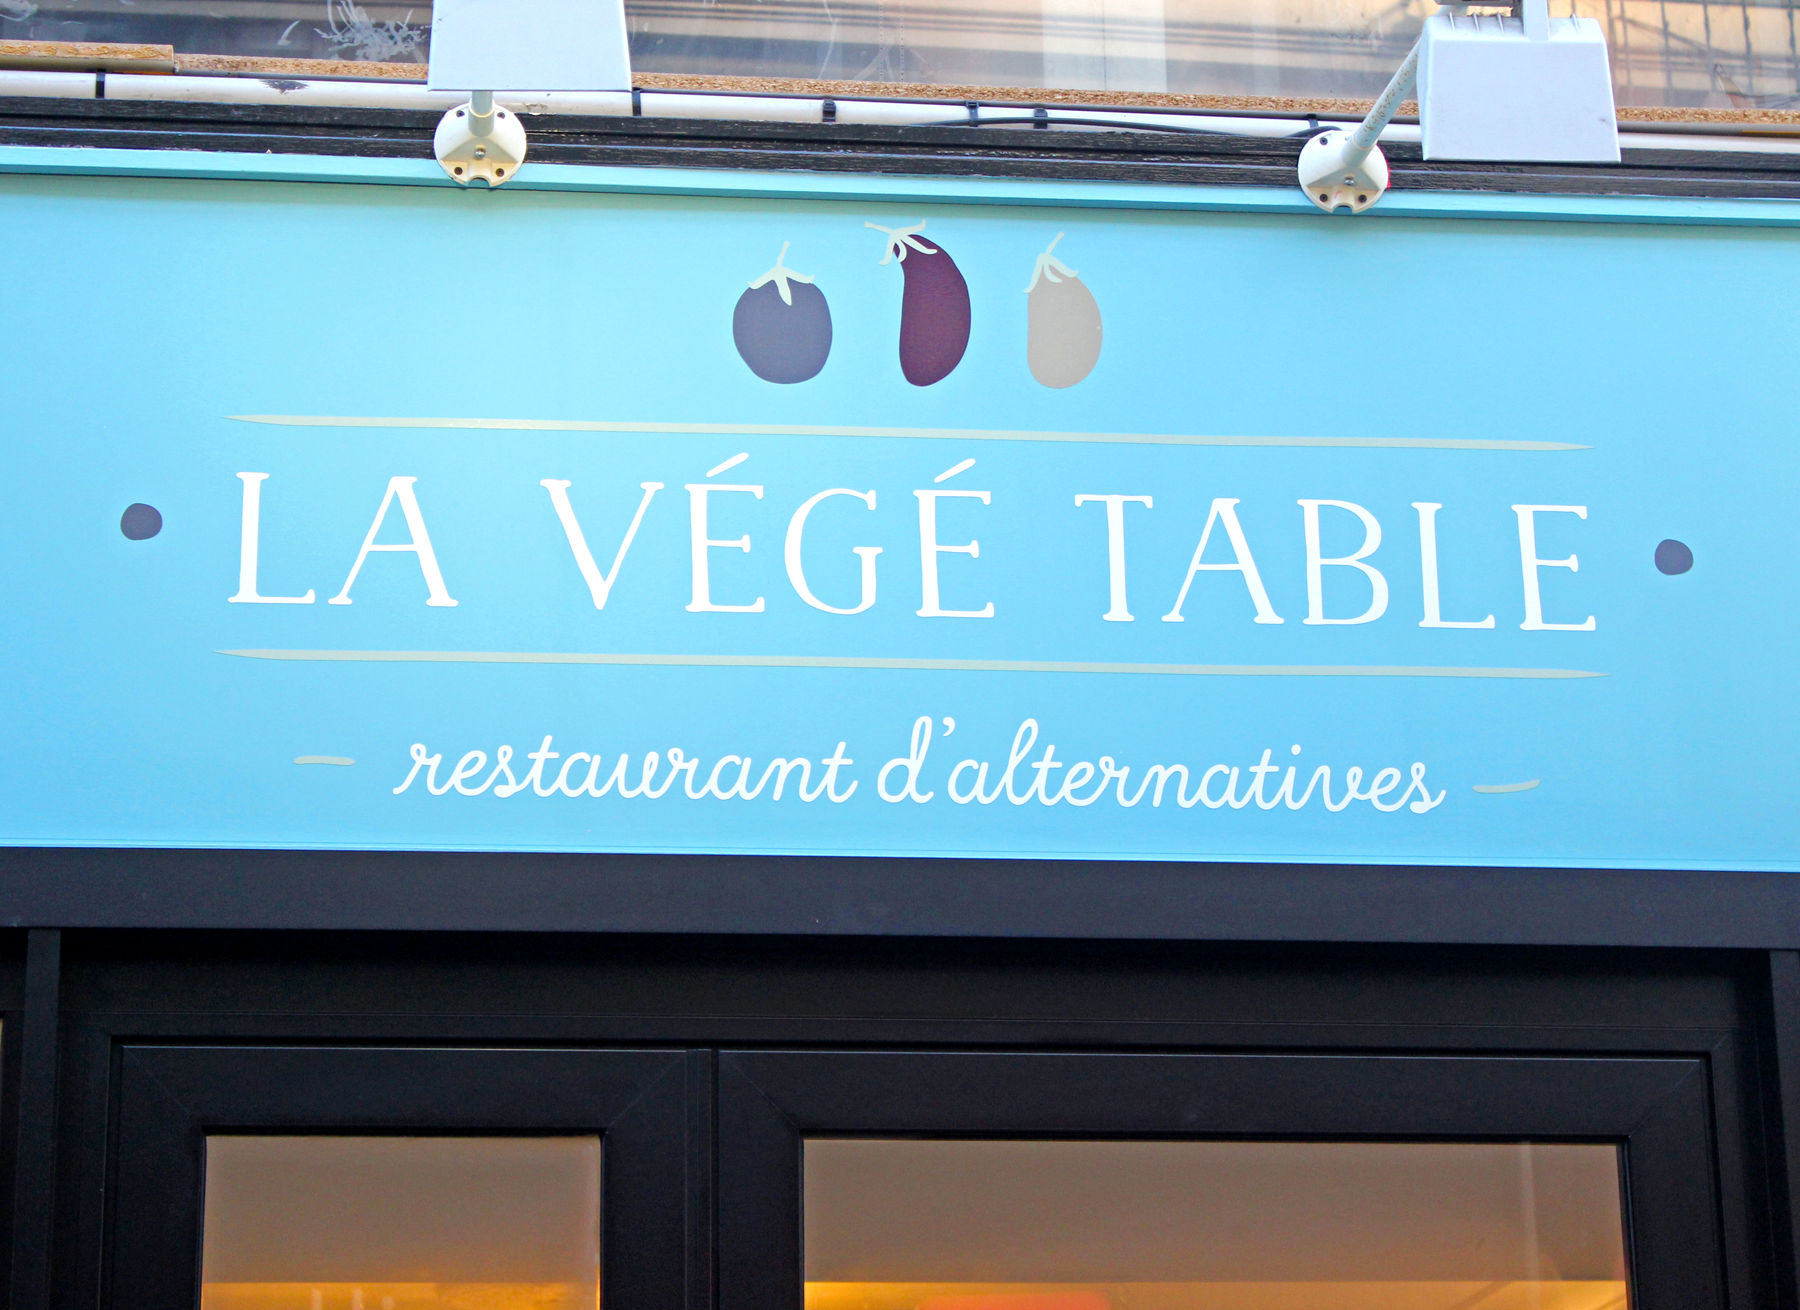 La Végé Table, Restaurant d'alternatives à Reims